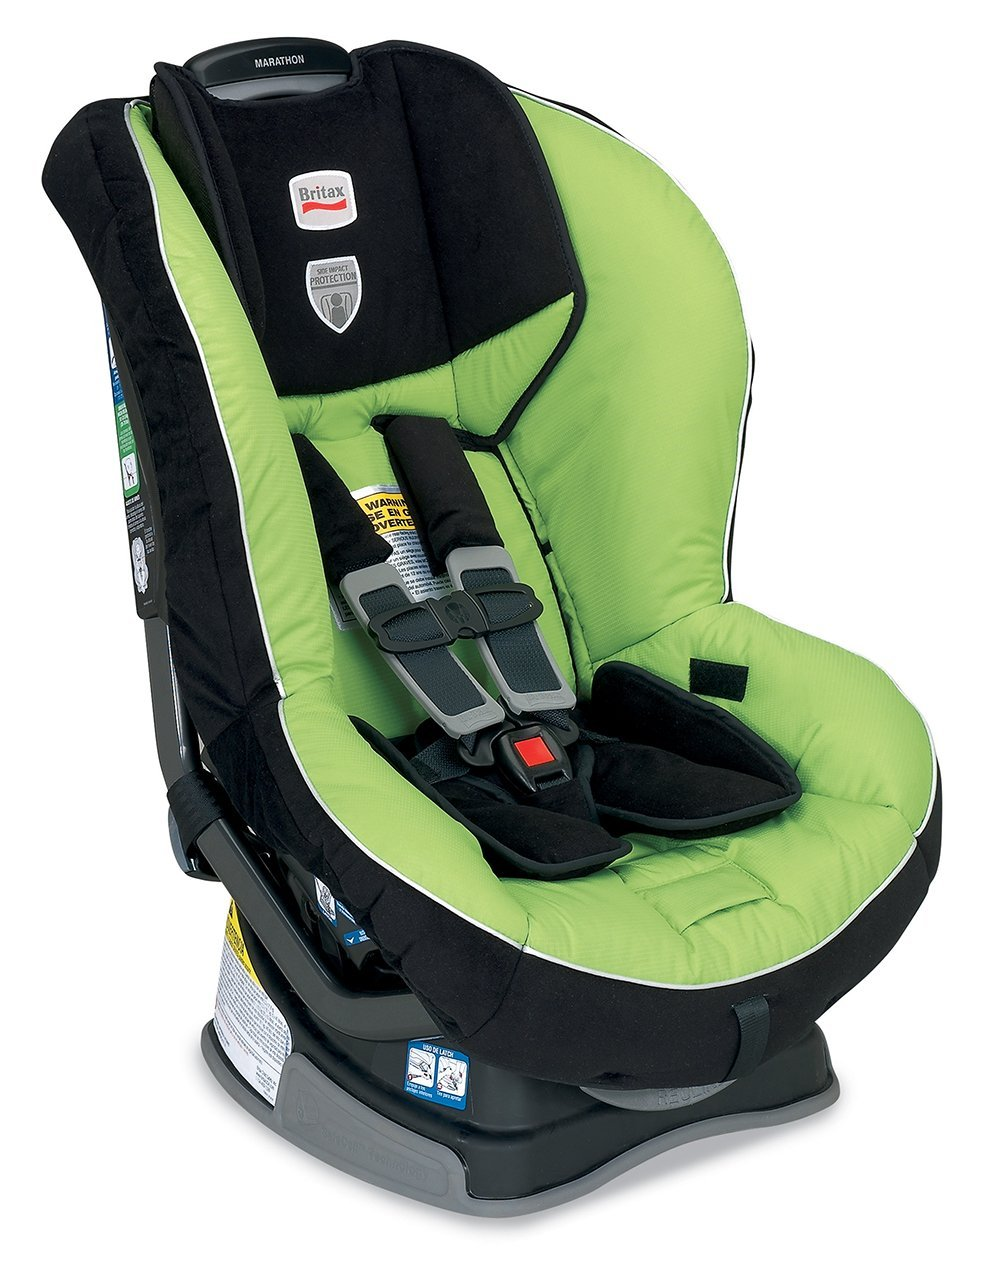 seat britax convertible marathon baby safety toxic non install kiwi prior g4 month seats tuesday child properly wheel pavilion advocate